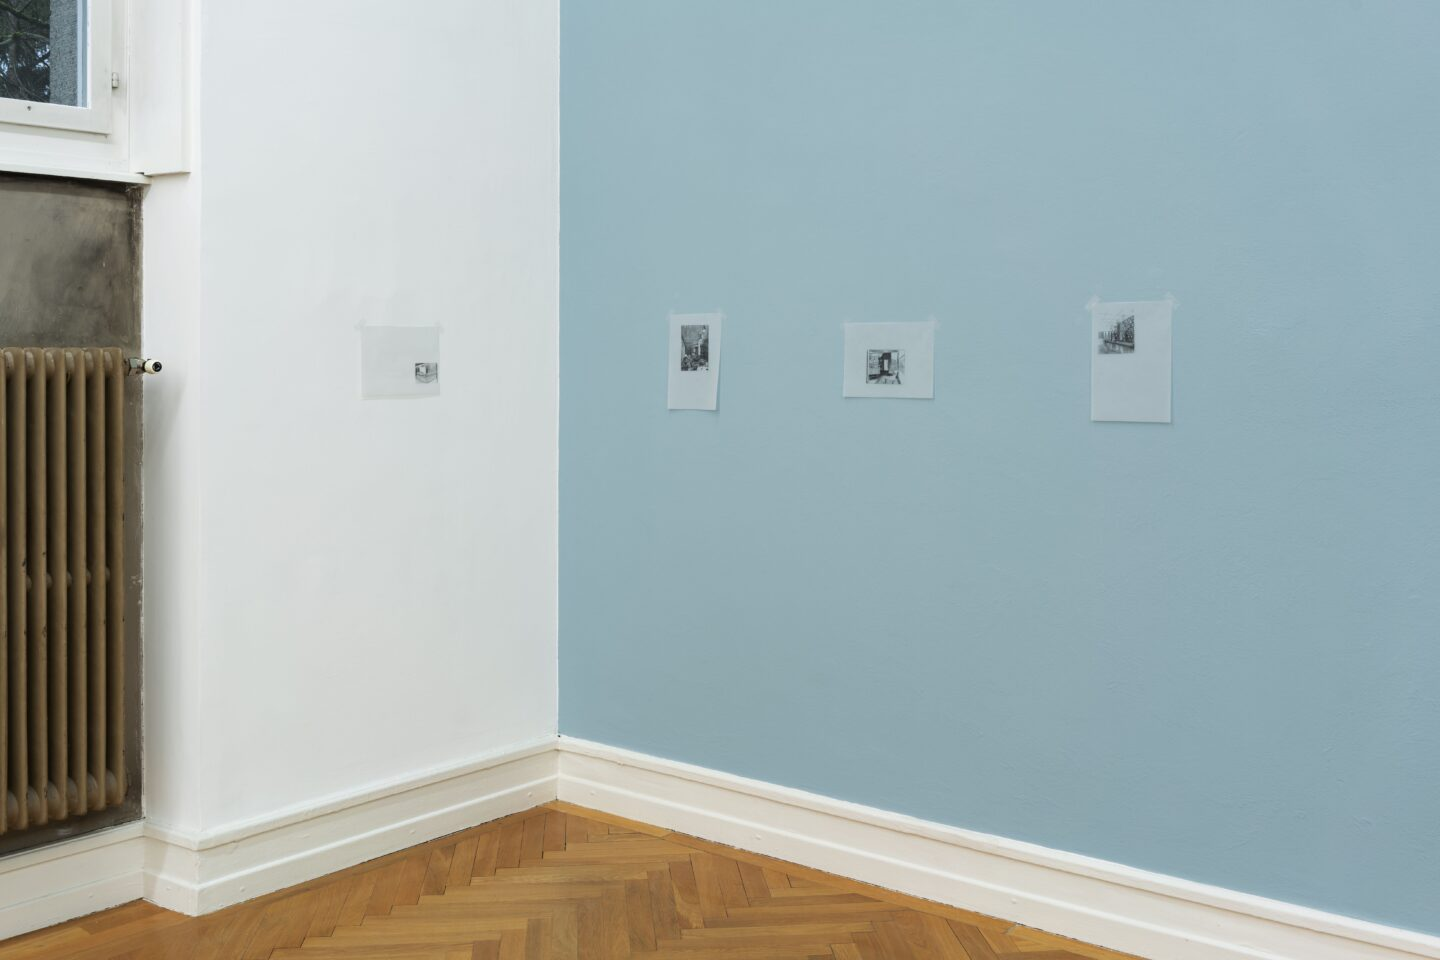 Exhibition View Marc Camille Chaimowicz Soloshow «Dear Valérie…; view on Nadia Wallis» at Kunsthalle Bern, Bern, 2020 / Photo: Gunnar Meier / Courtesy: the artist and Kunsthalle Bern